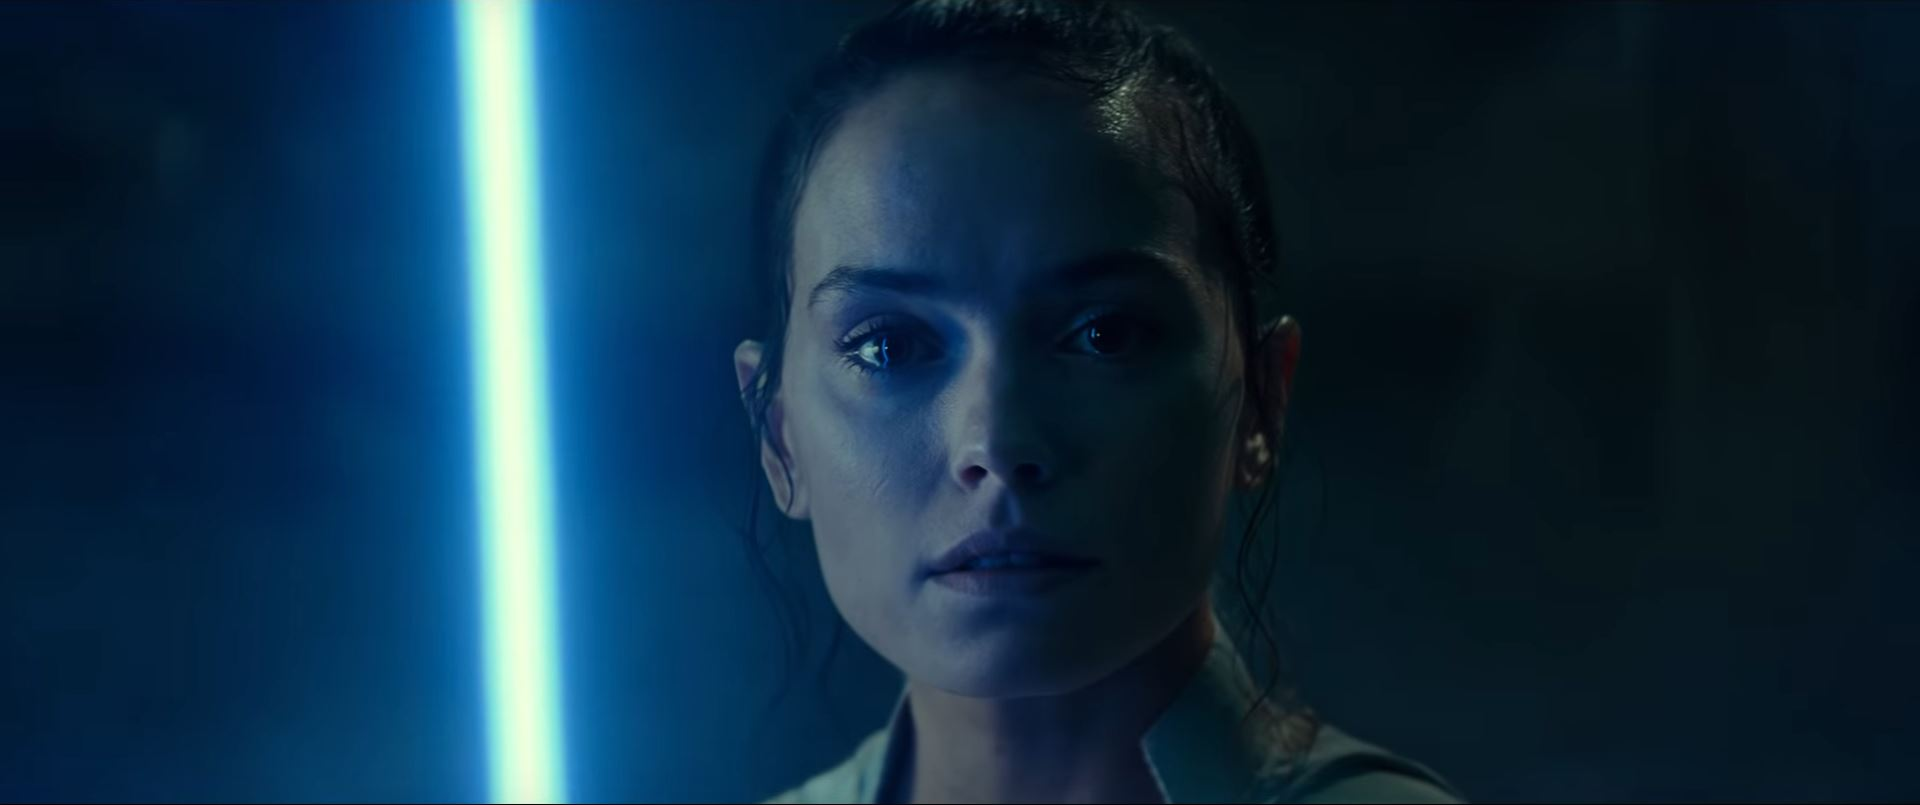 Daisy Ridley as Rey on The Rise of Skywalker